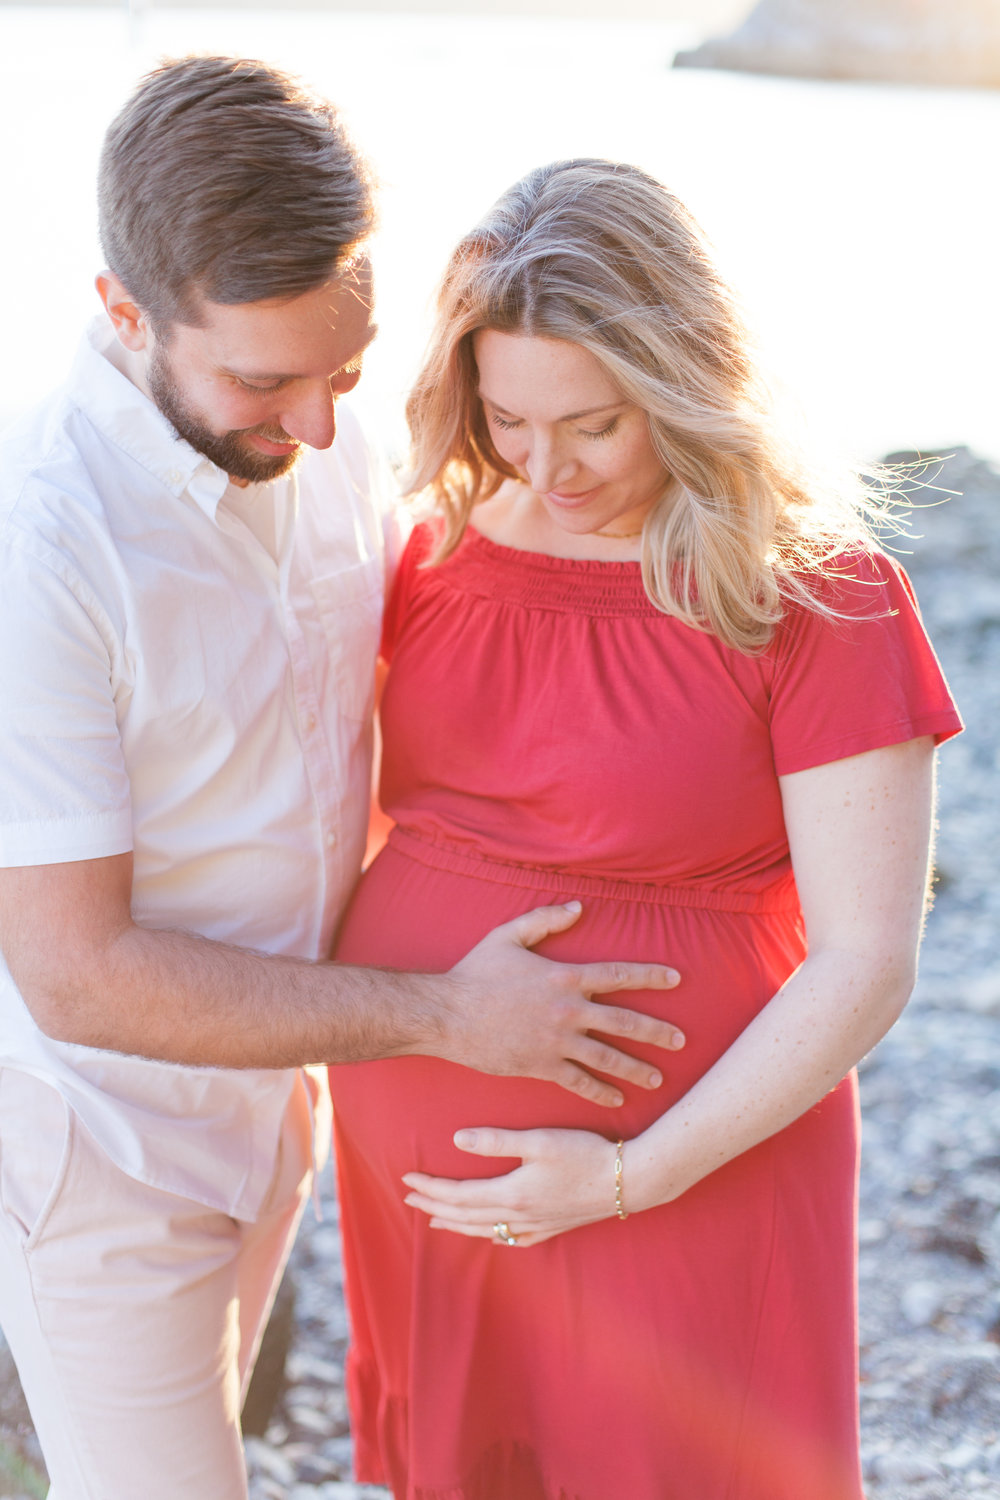 Whytecliff Park Maternity Photos-2.jpg